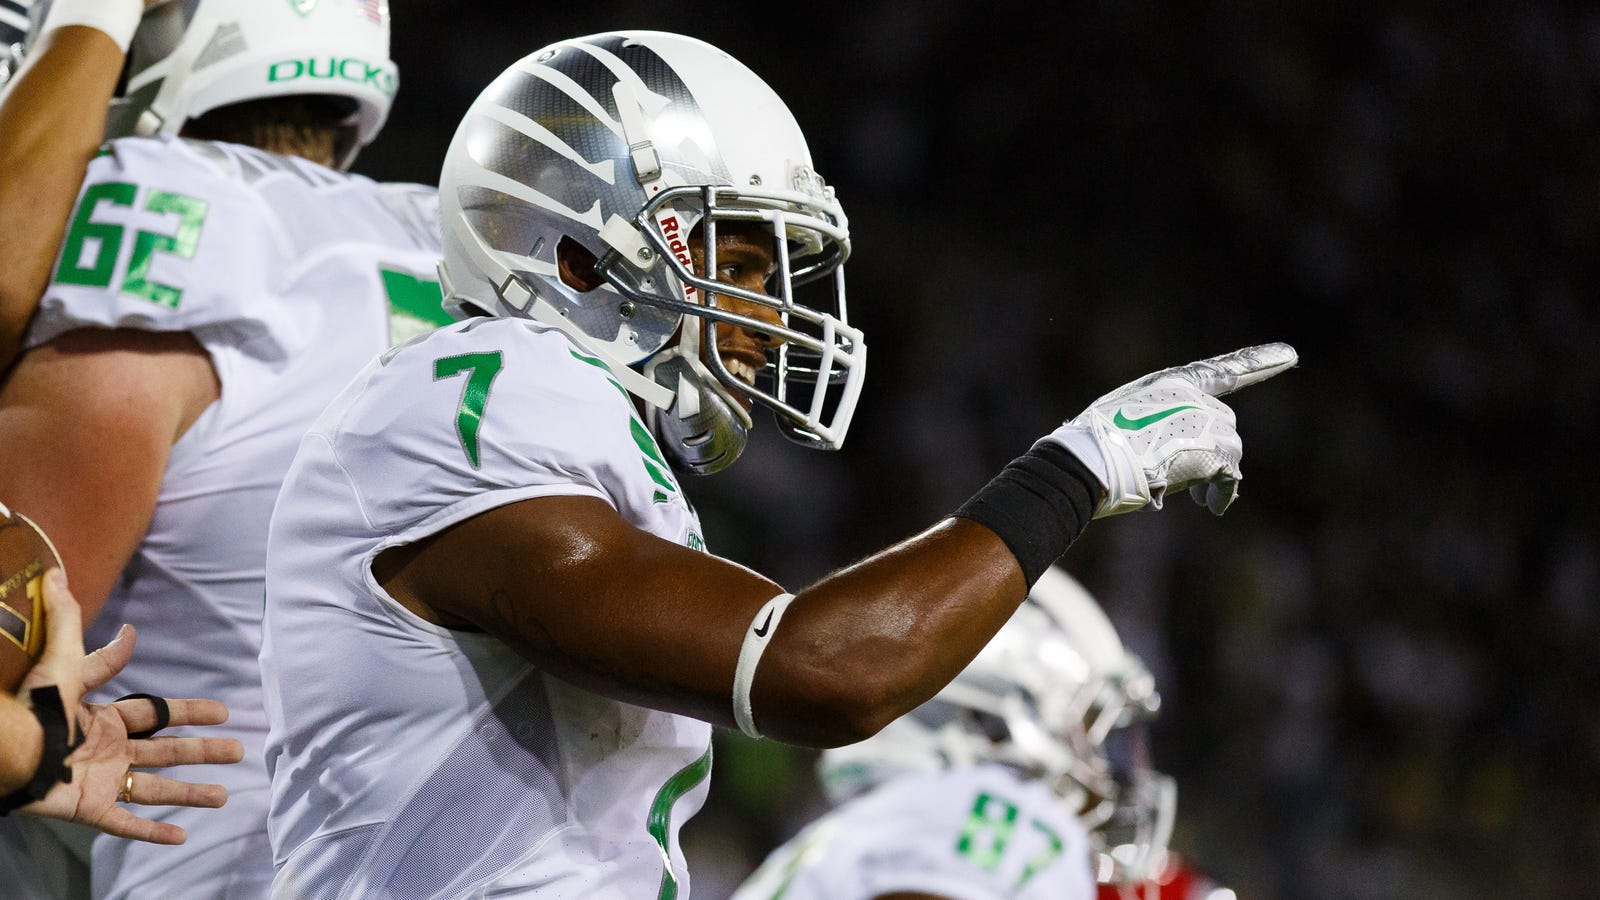 Report: Former Oregon Receiver Brought Down Gunman At A Portland High School – Deadspin